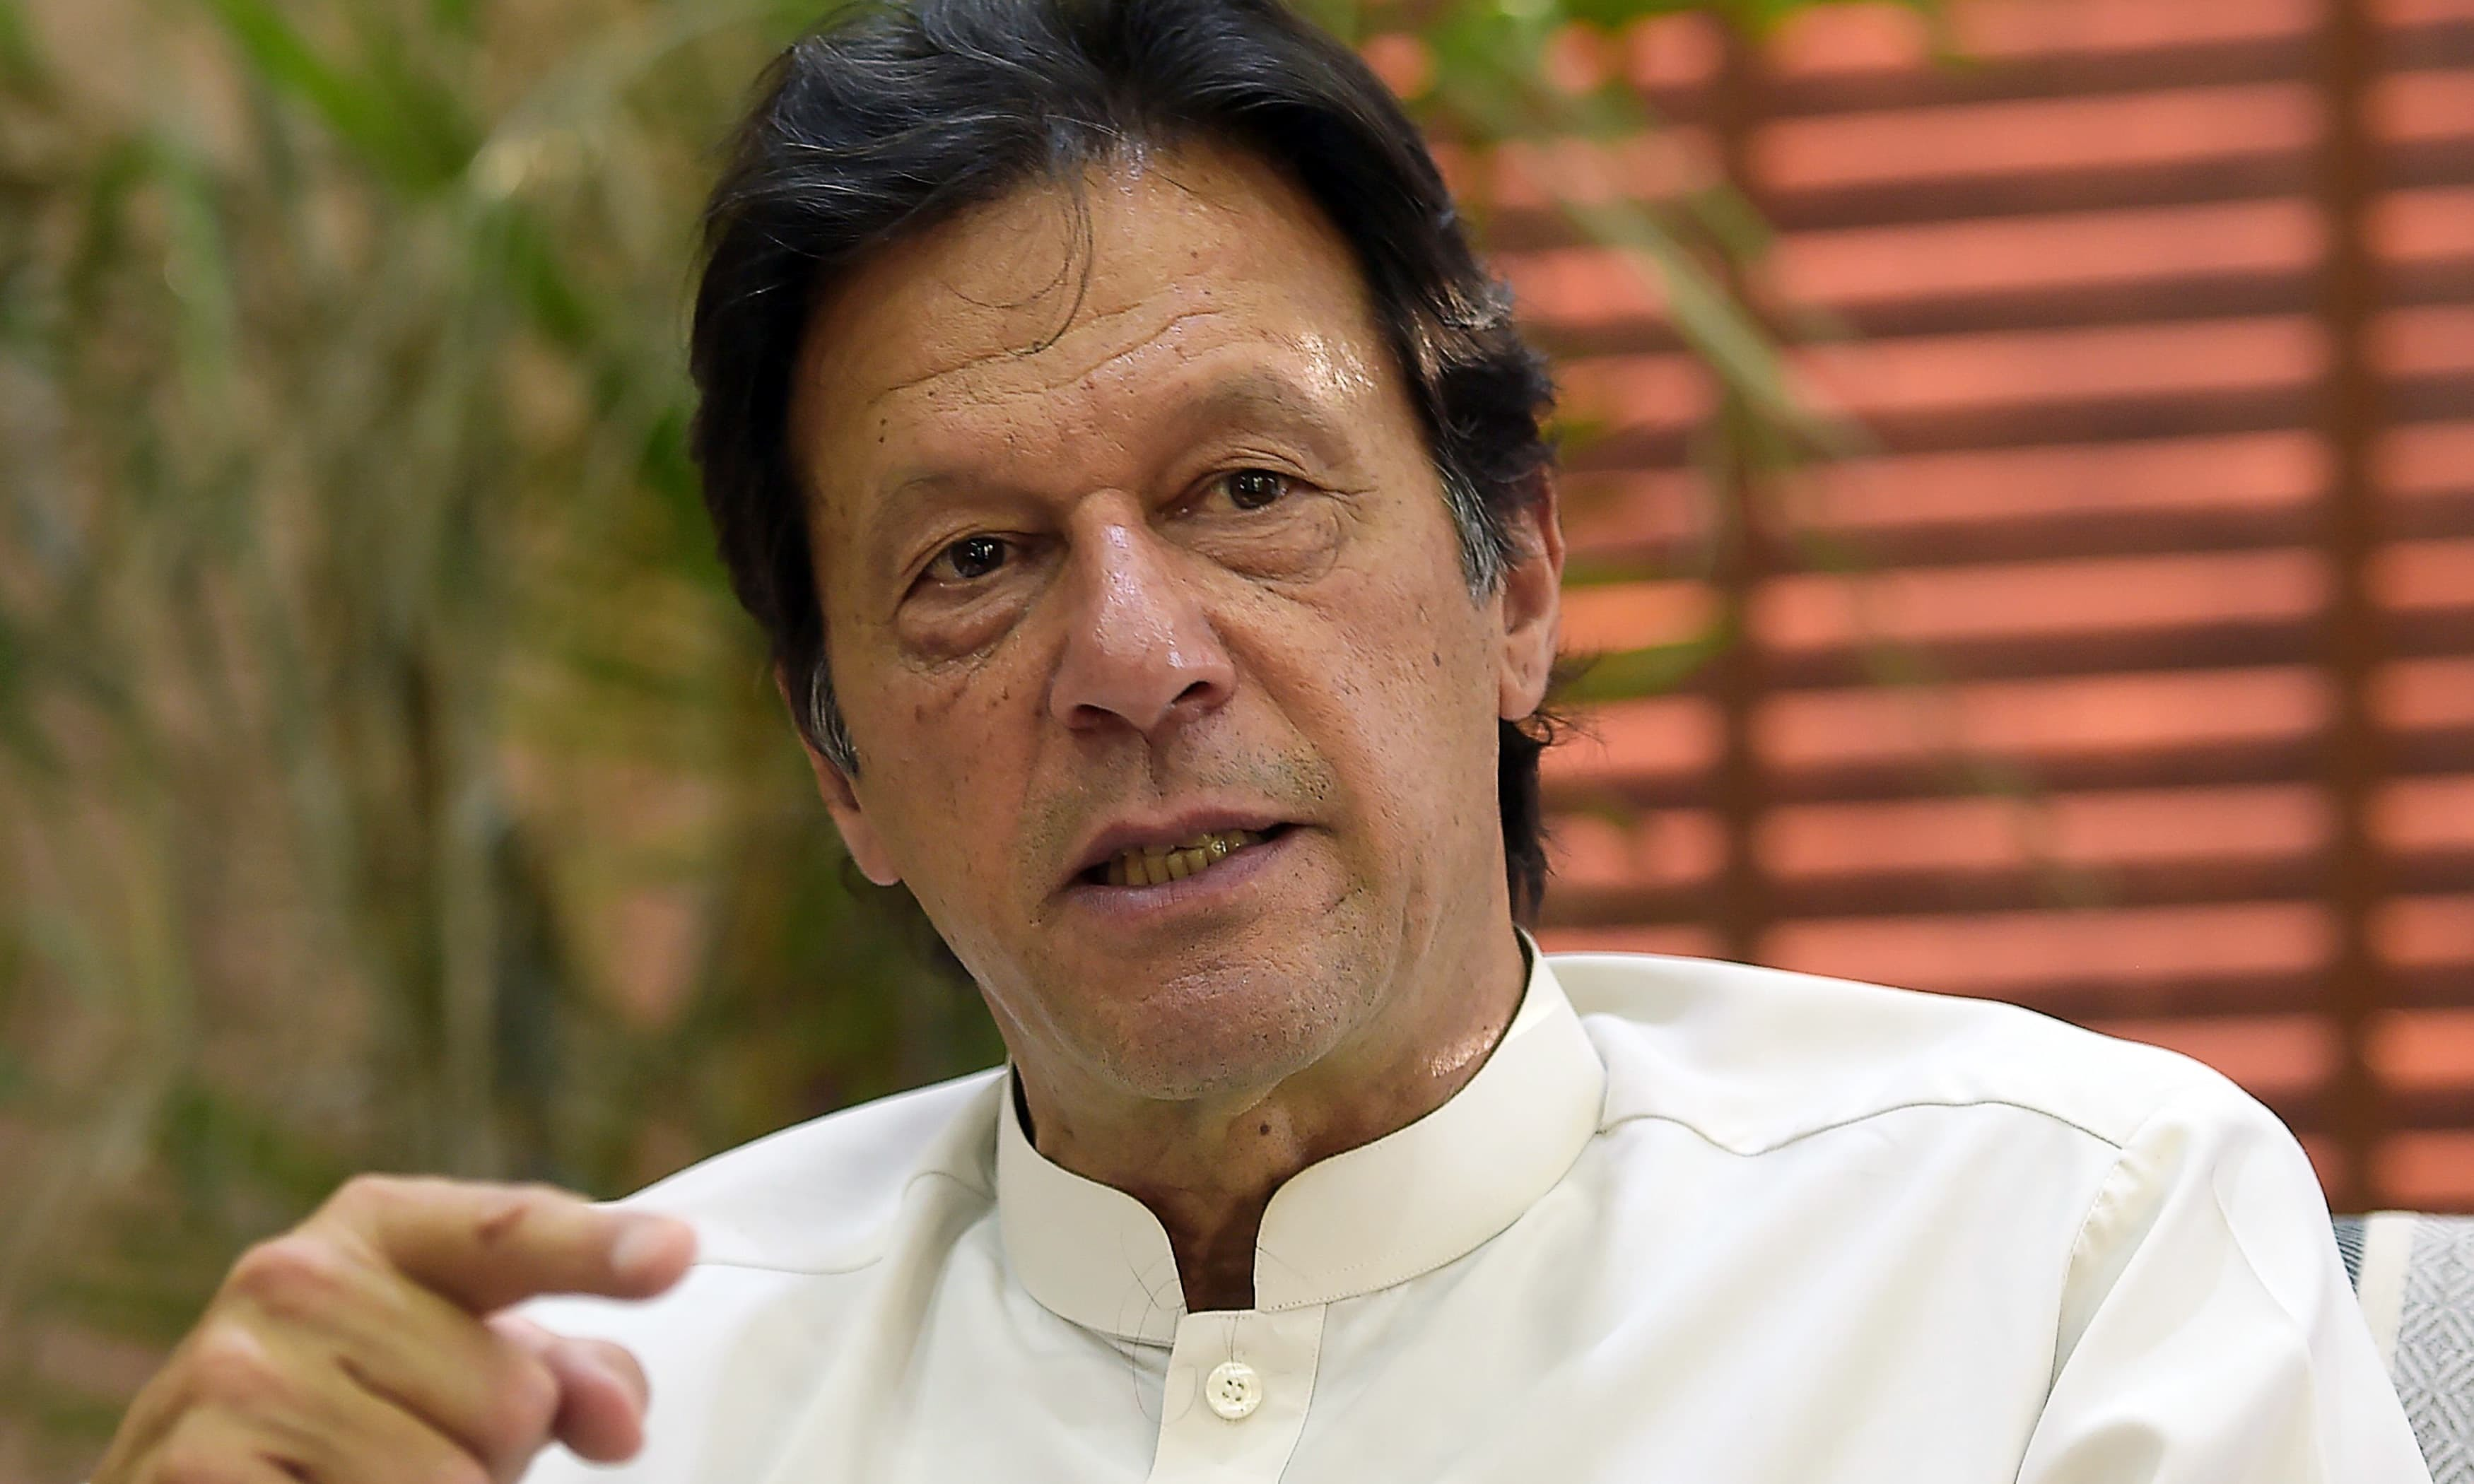 Prime Minister Imran Khan's party PTI has requested court to restrain scrutiny committee from probing the party's foreign funding. — AFP/File